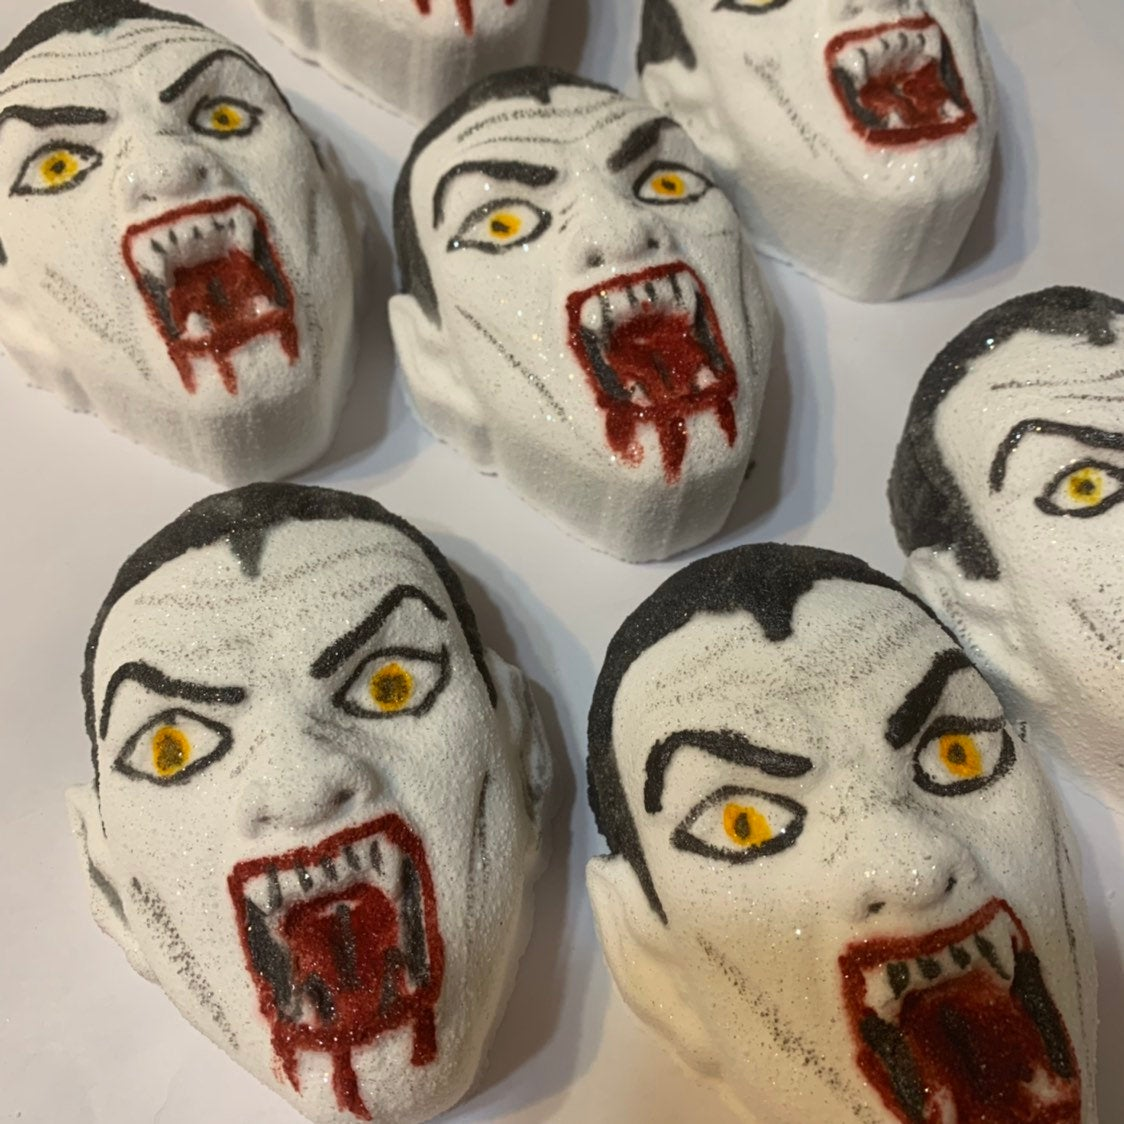 Scary Horror Vampire Bath Bomb - Melting vampire bloody bath bomb